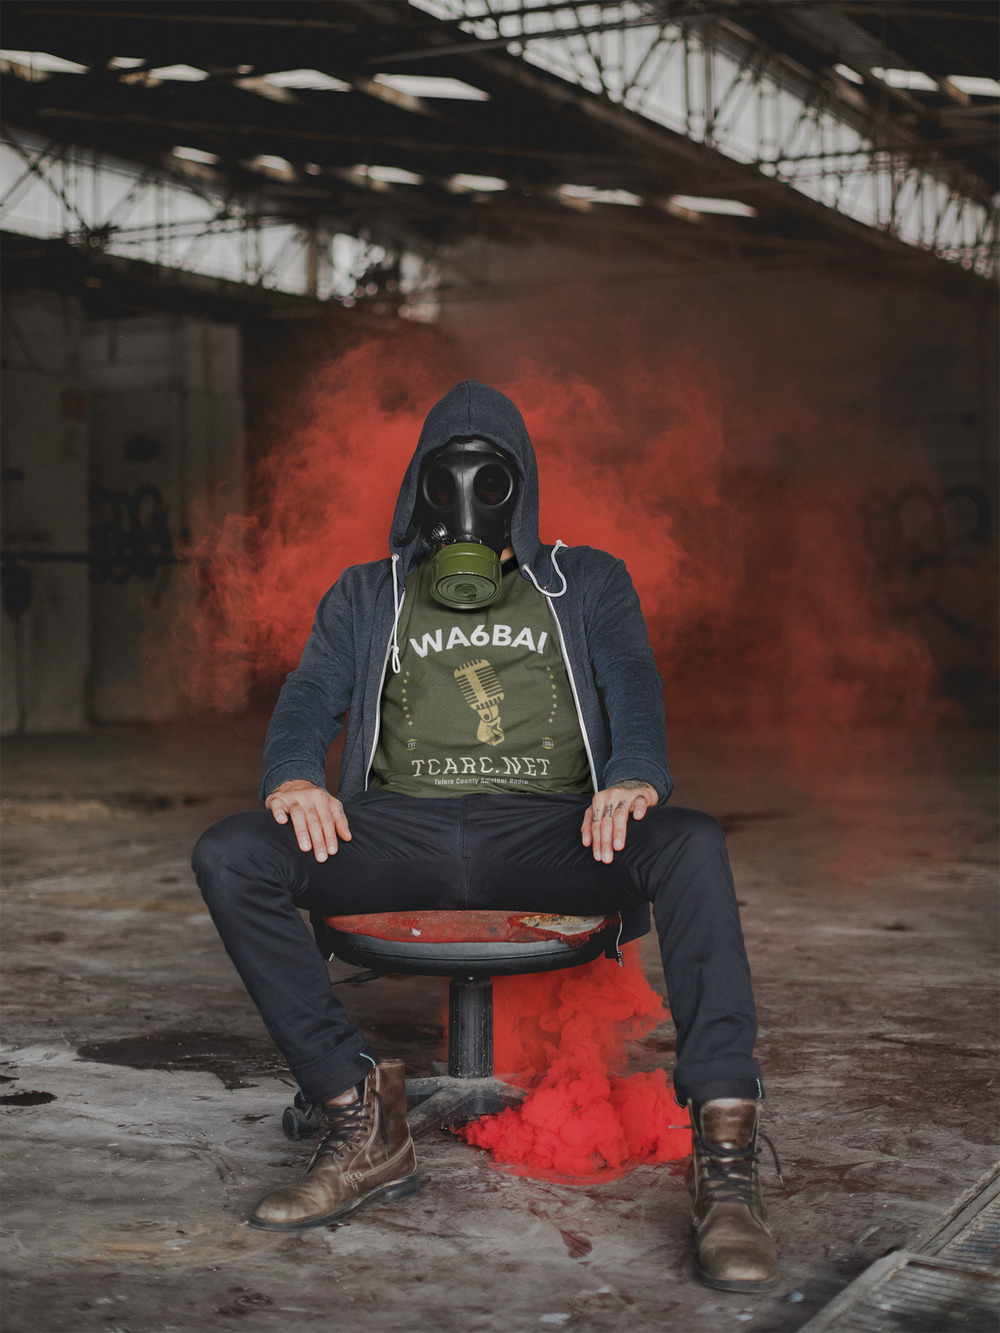 t-shirt-mockup-of-a-man-with-a-gas-mask-sitting-near-red-smoke-22946(1).jpg